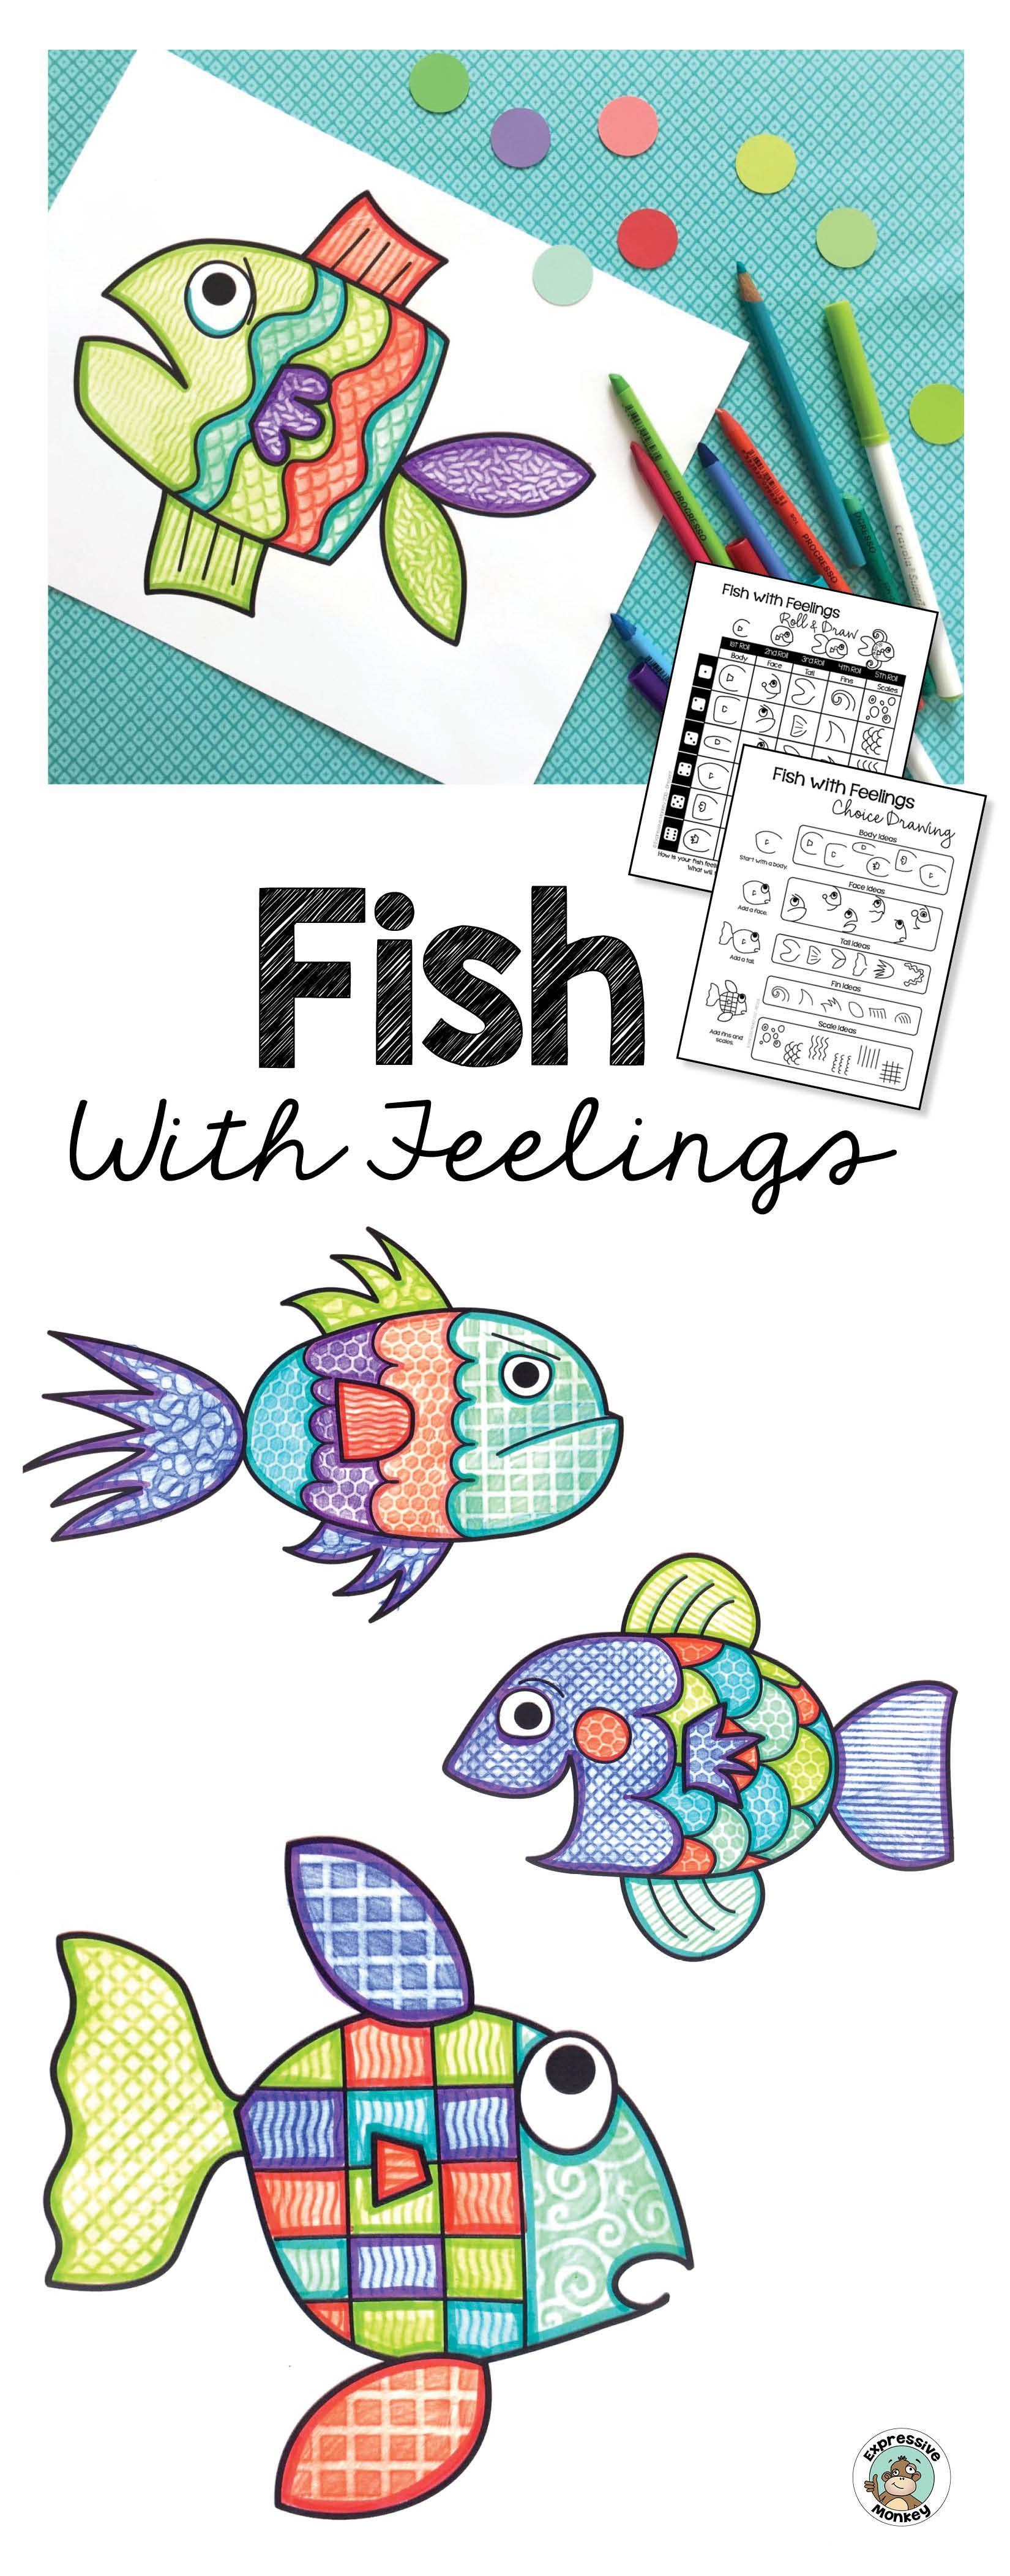 Fish with Feelings Drawing, Writing and Coloring Art